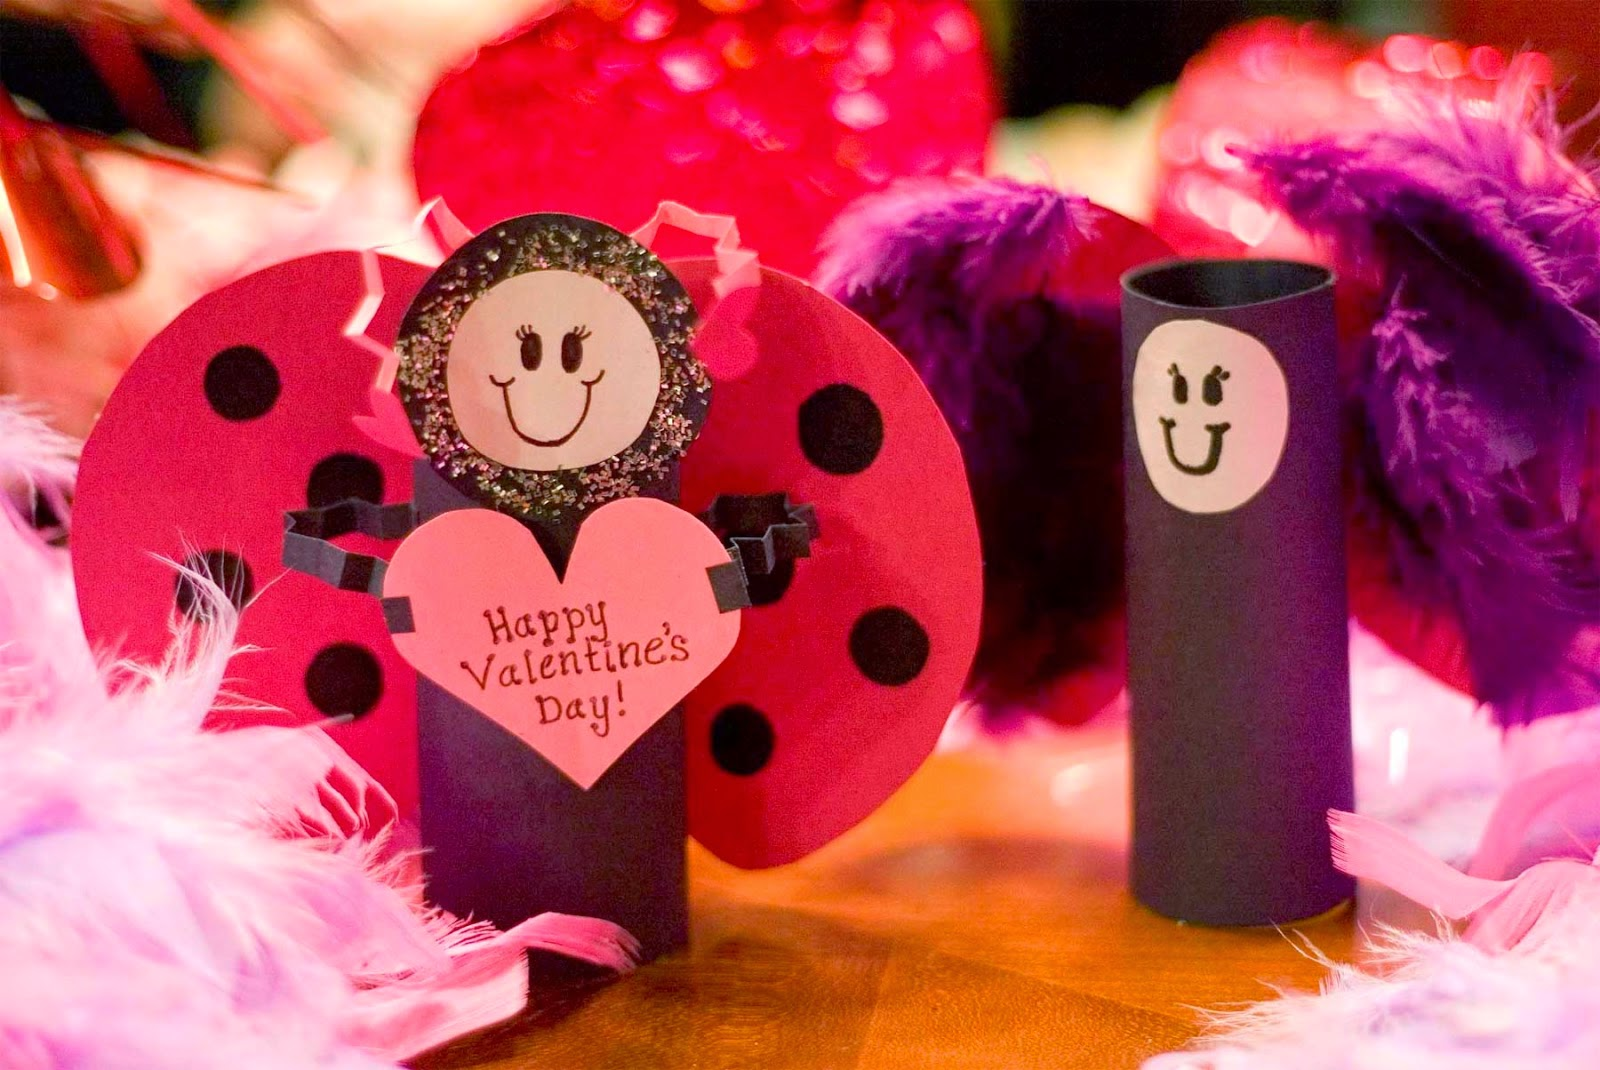 Happy Valentines Day 2015 Gifts,Happy Valentines Day 2015 Greetings,Happy Valentines Day 2015 Gifts for girlfriend,Happy Valentines Day 2015